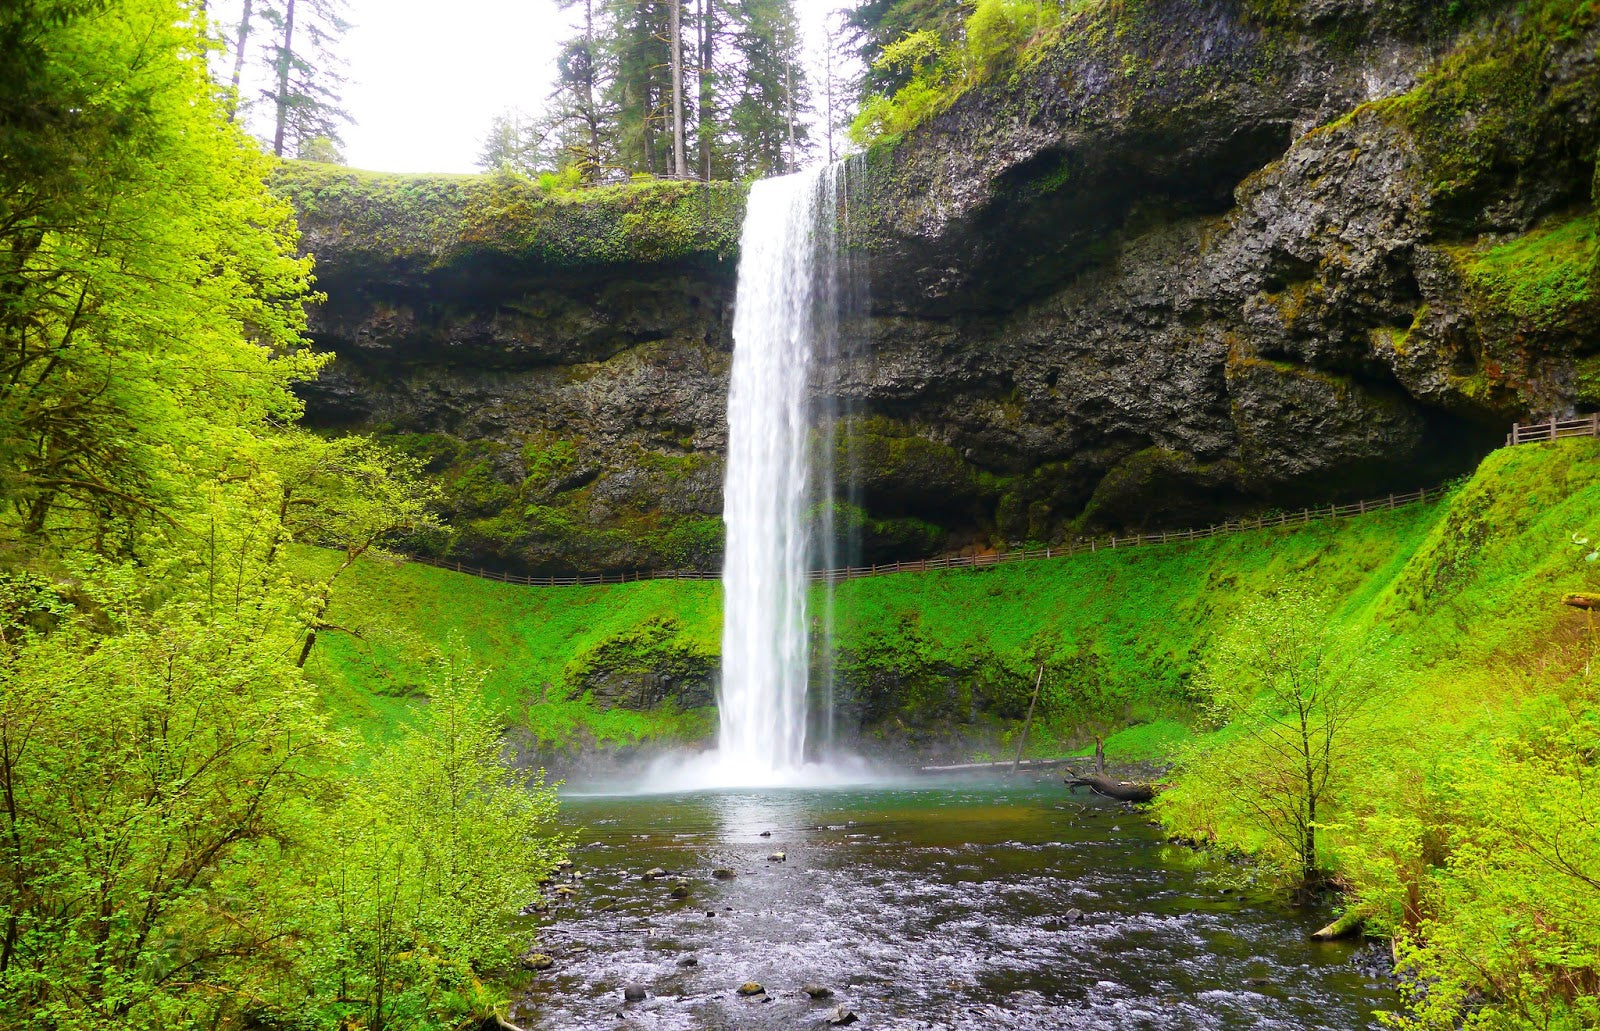 Waterfalls at Silver Falls State Park near Salem